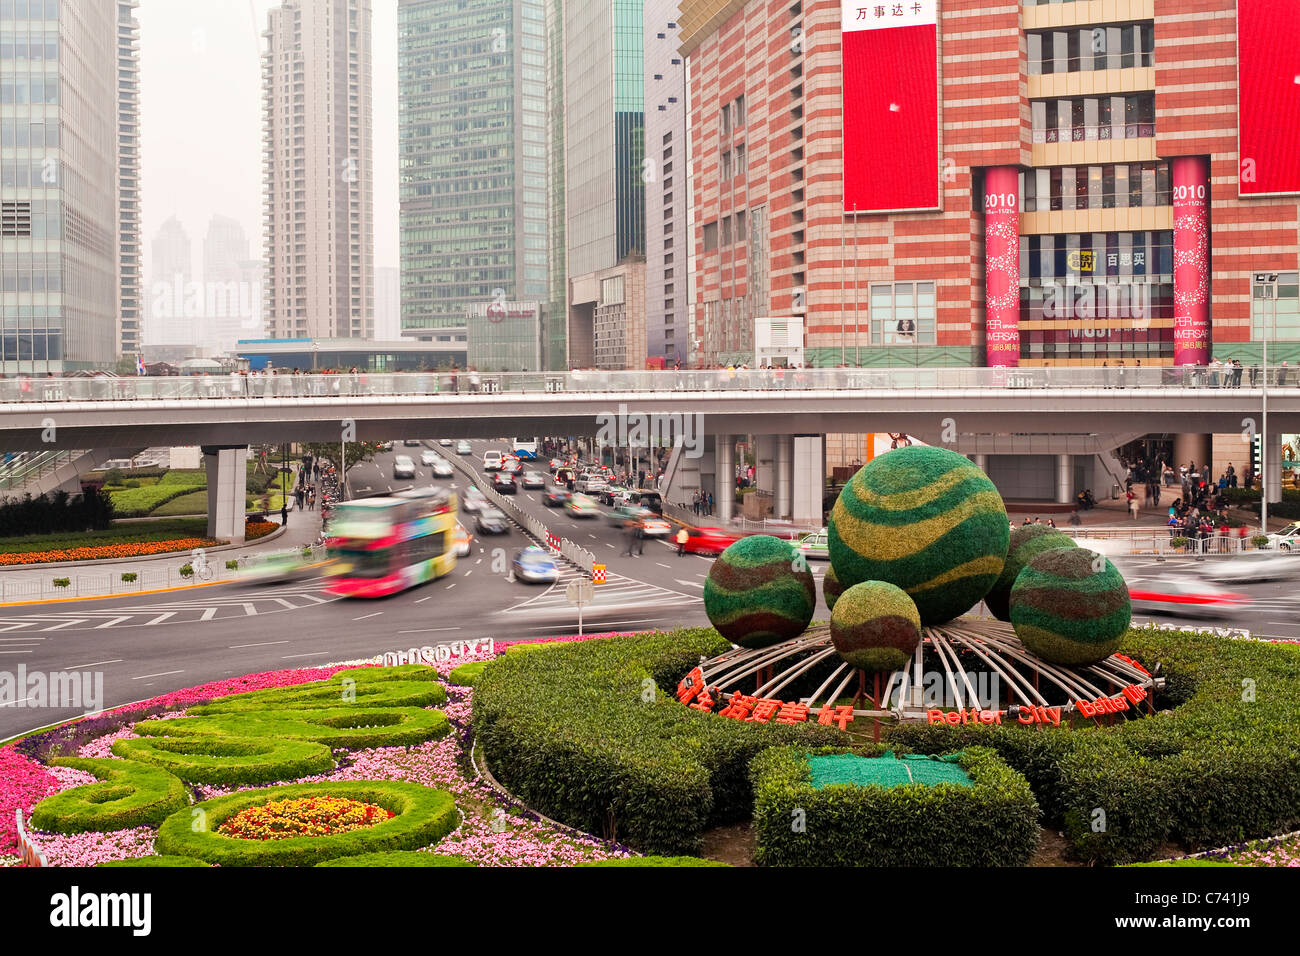 Spherical hedges in central island of roundabout, Century Avenue, Pudong, Shanghai, China - Stock Image